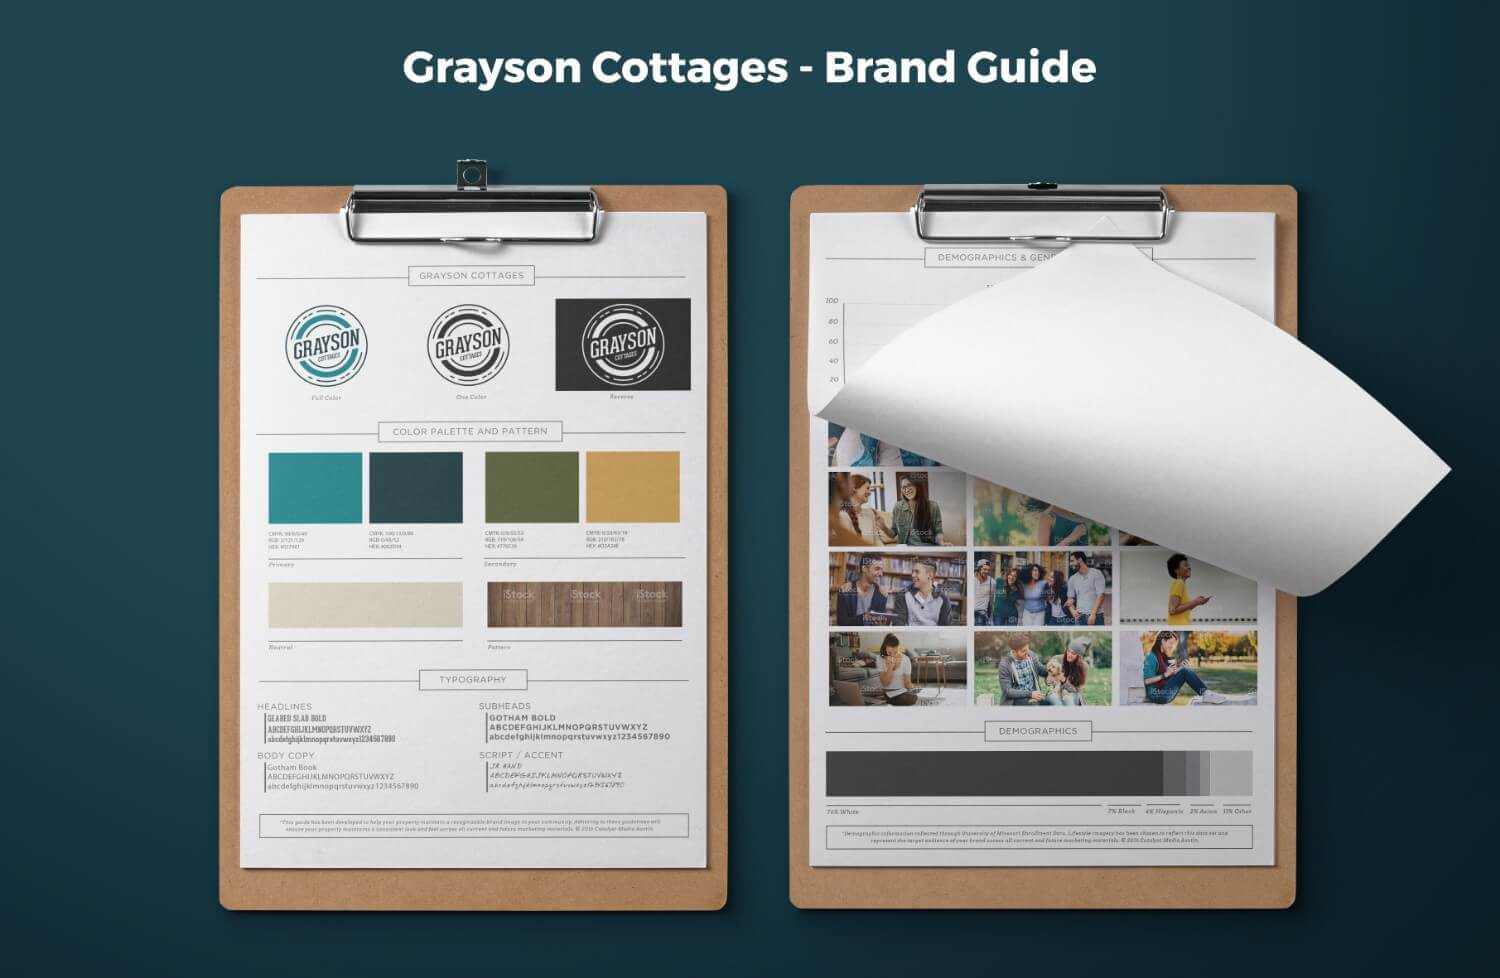 Grayson Cottages Brand Guide